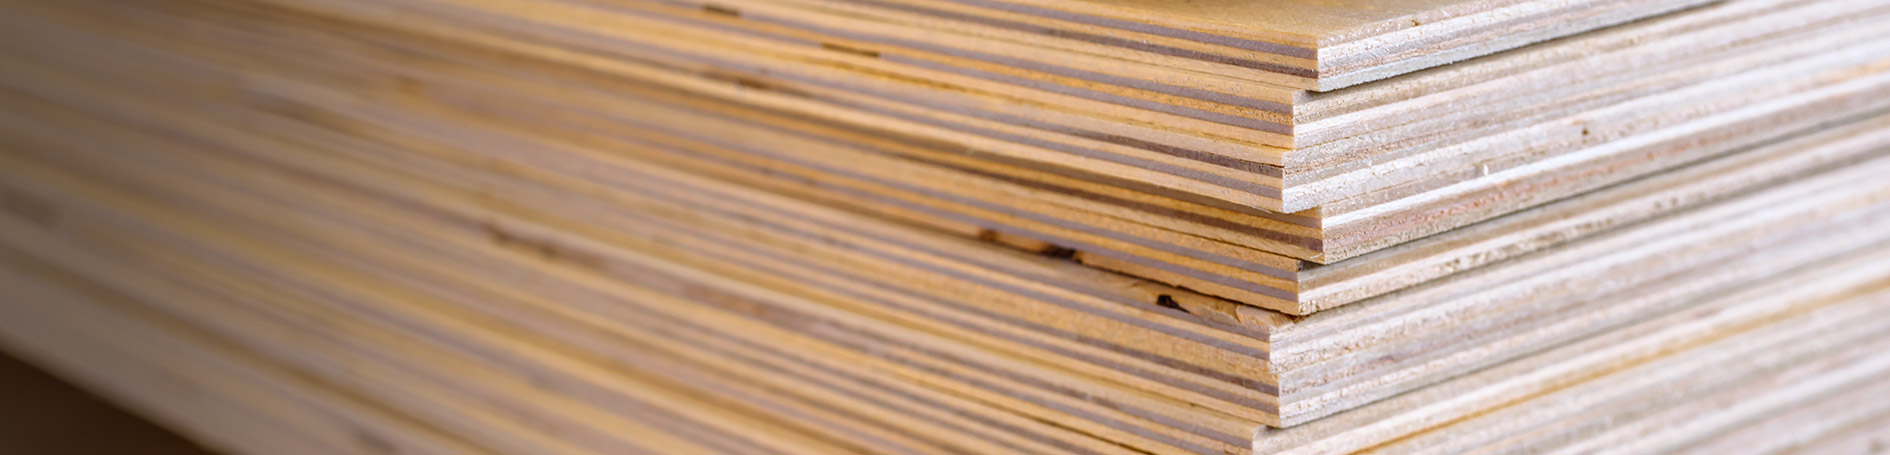 Construction Wood Supply and Delivery | Fire-Treated Lumber